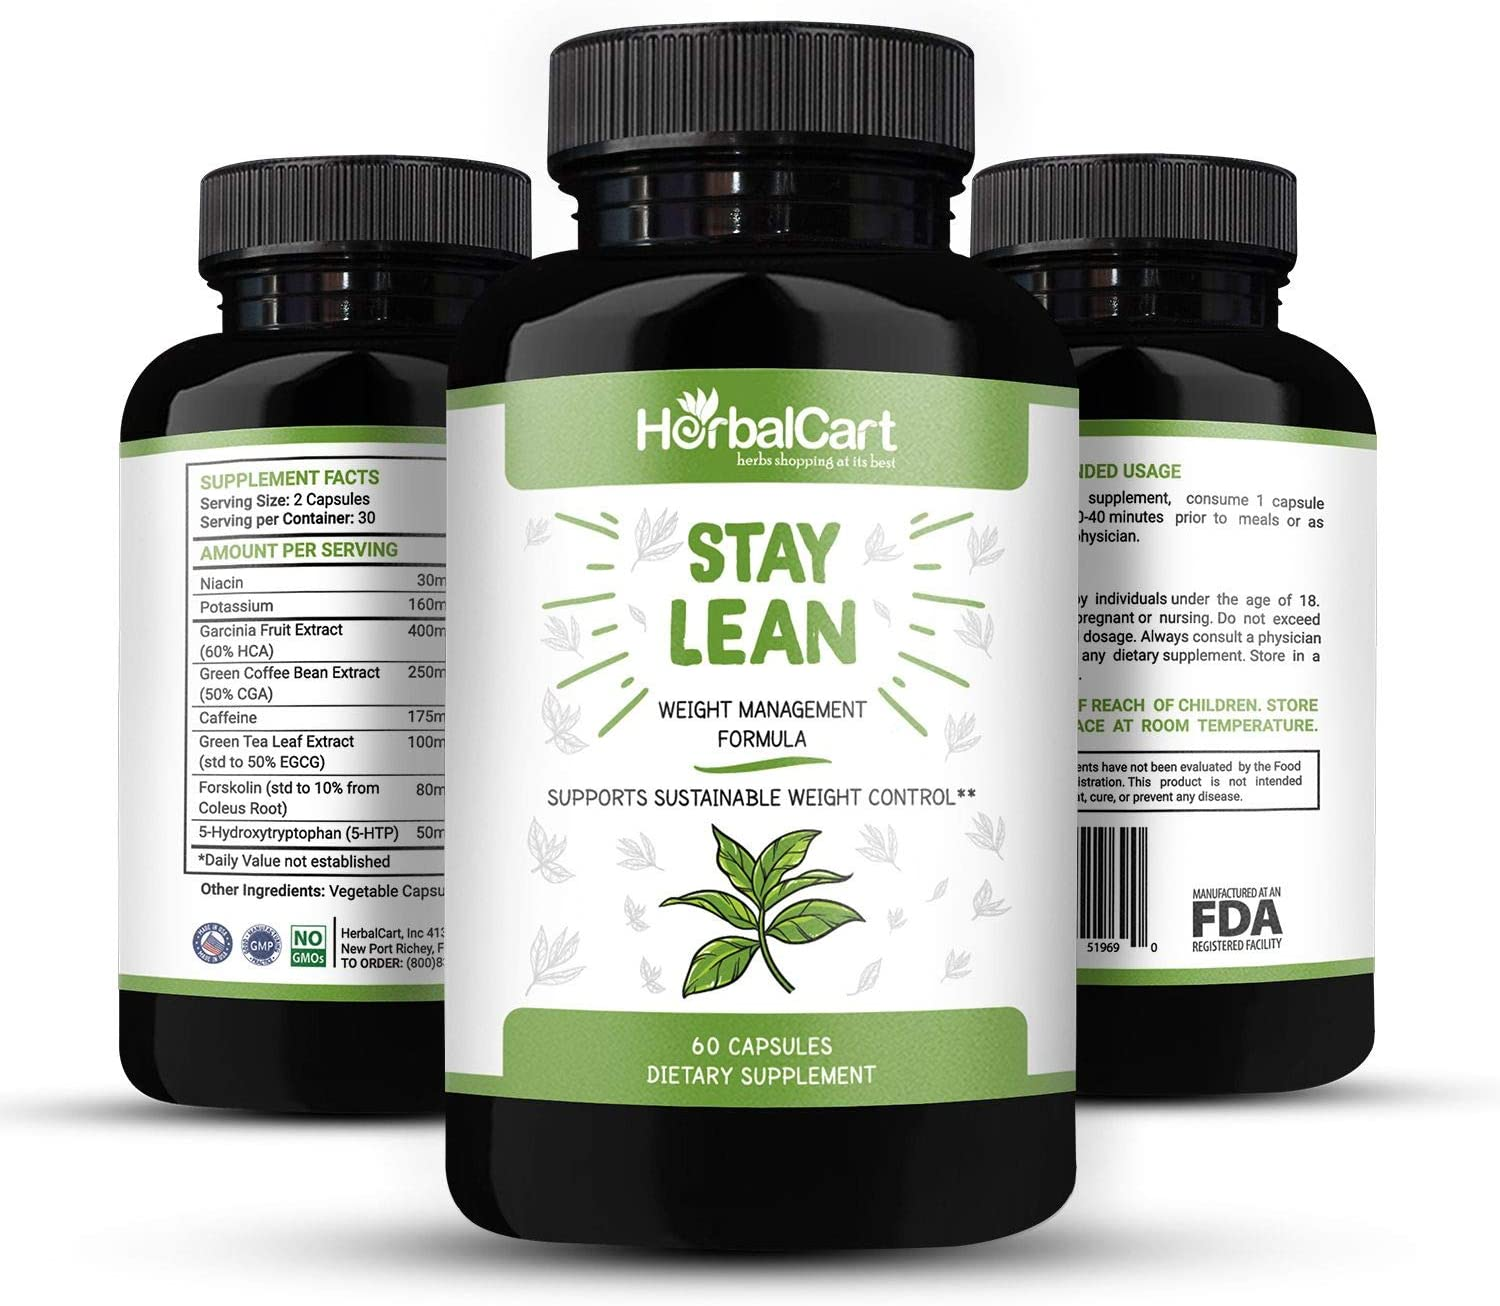 HerbalCart – Weight Loss Pills – Stay Lean for Men Women – Formulated with Niacin, 5-Hydroxytryptophan, Caffeine, Green Coffee Bean Extract More Natural Ingredients 60 Capsules